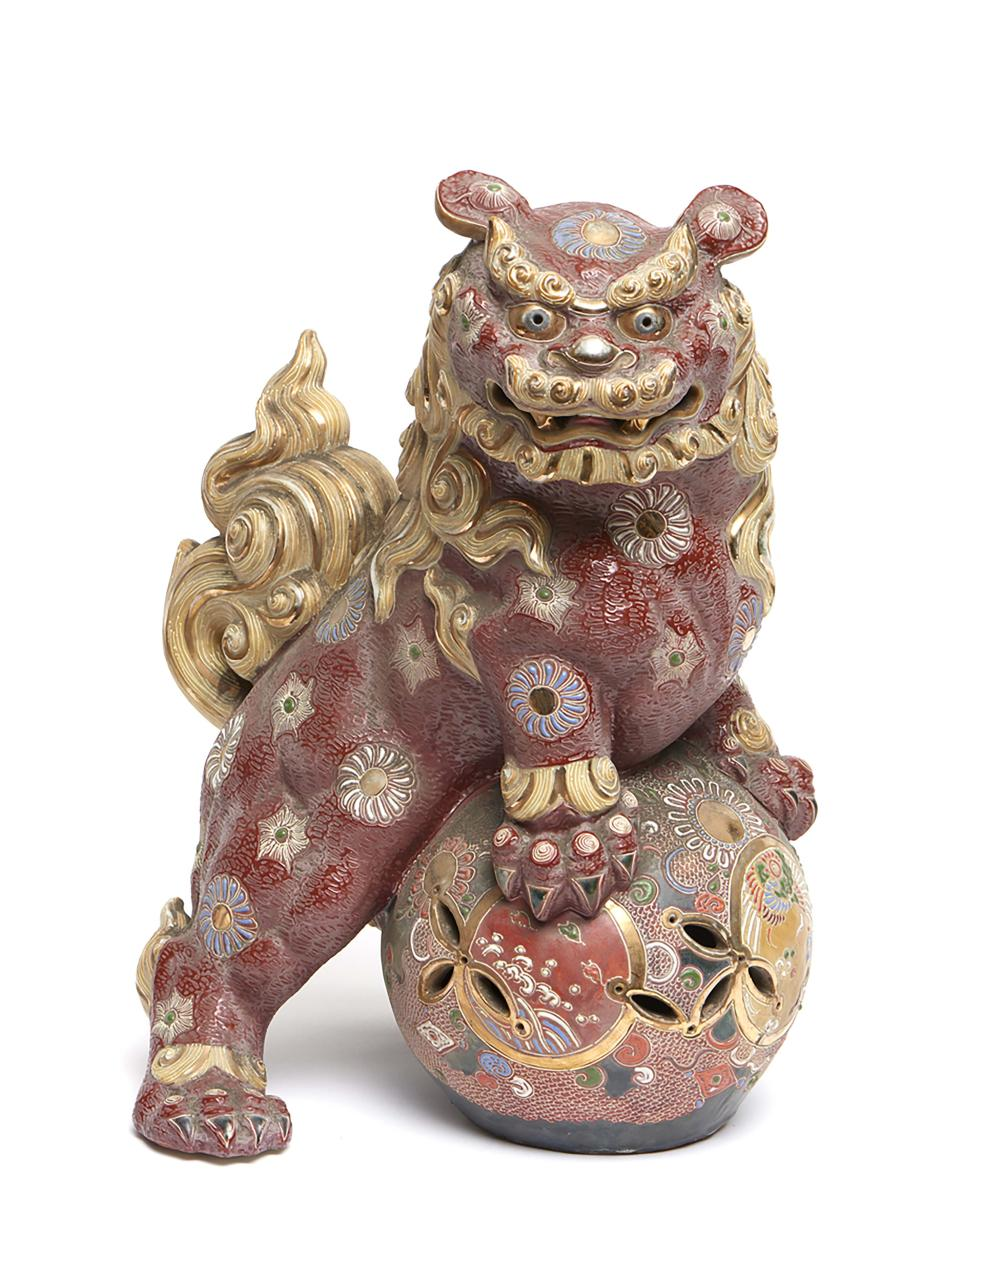 Satsuma-ware figure of a red glazed shishi-lion standing on an open-work ba